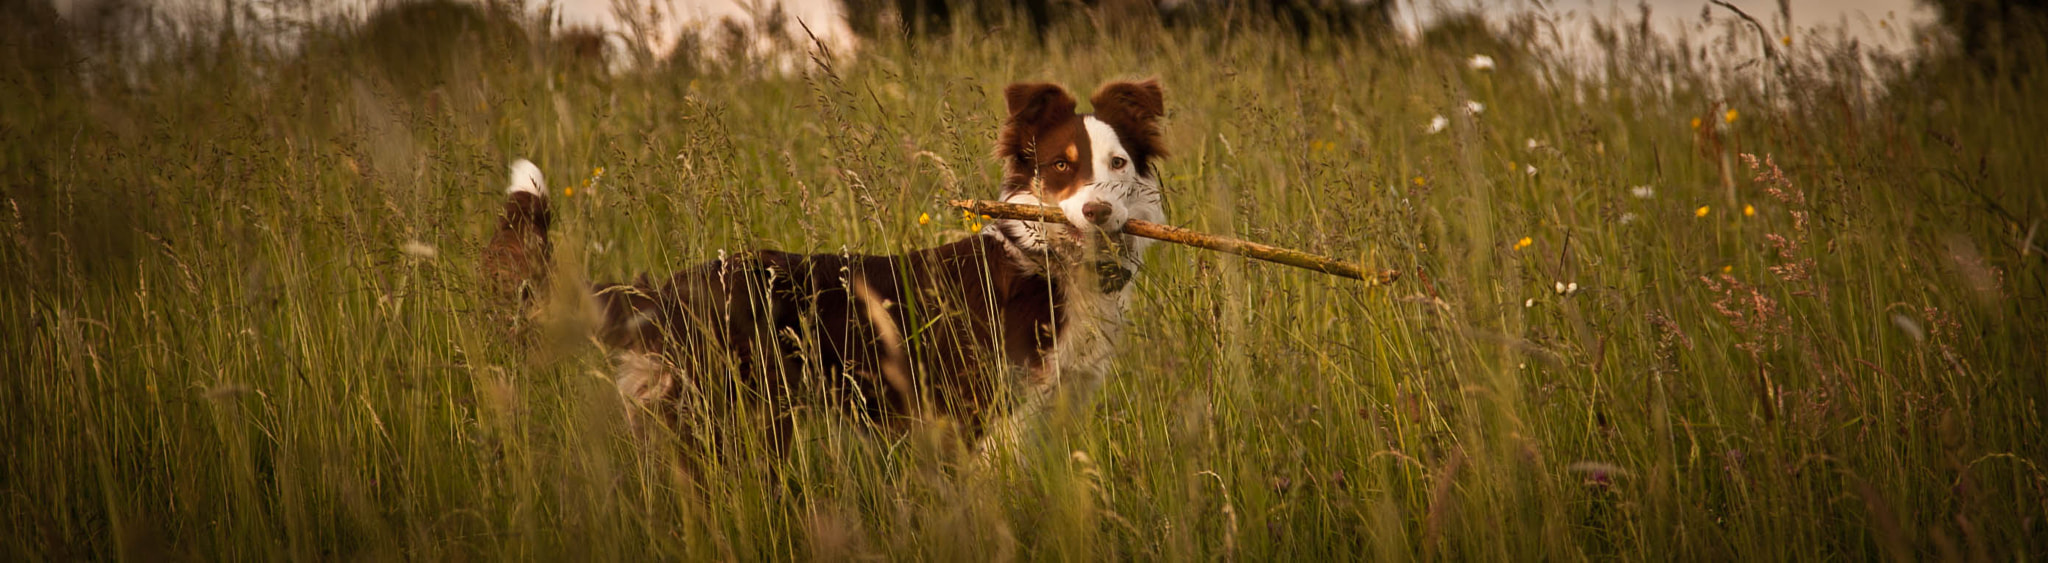 Photograph Playtime? by Anna Goodrum on 500px